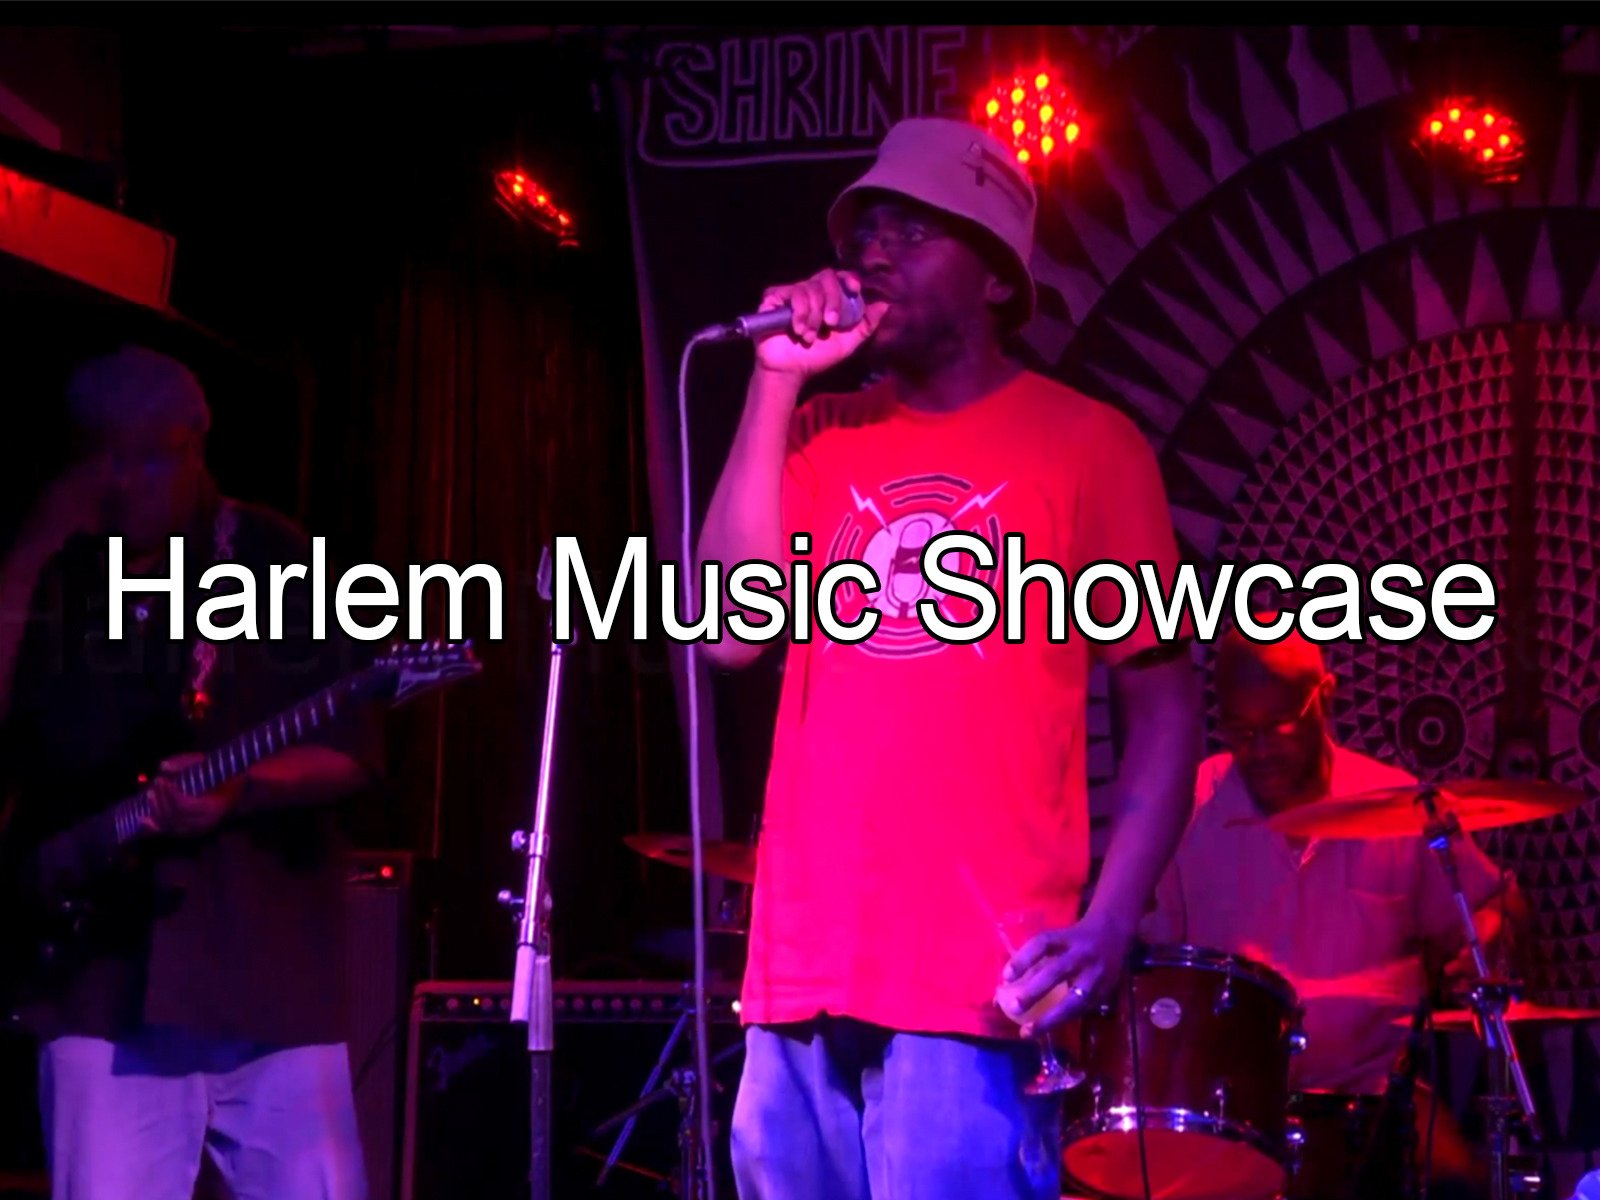 Harlem Music Showcase